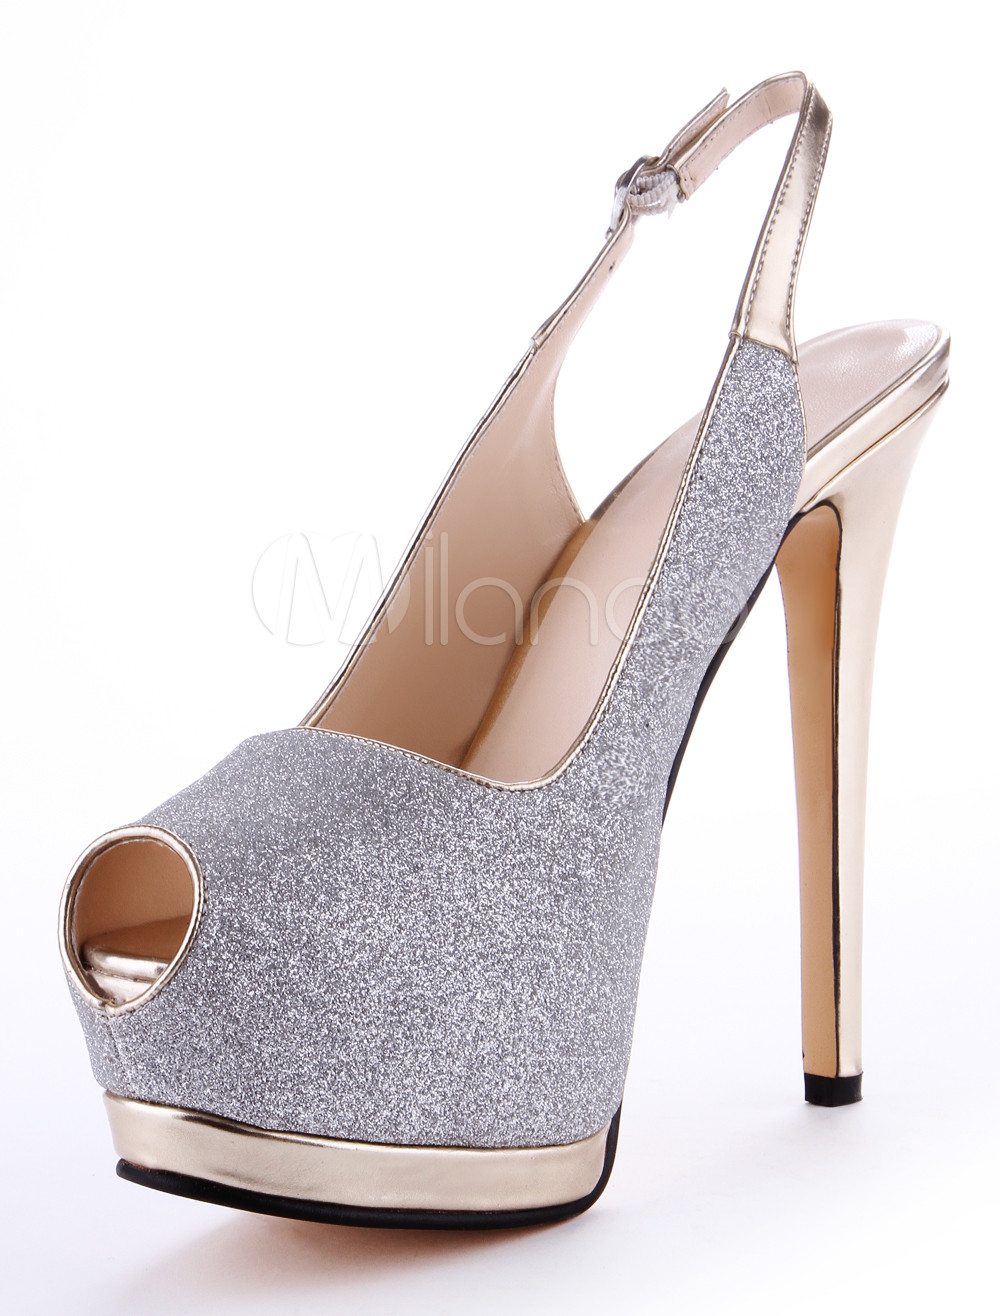 Chic Silver Synthetic Material Glitter Peep Toe High Heels